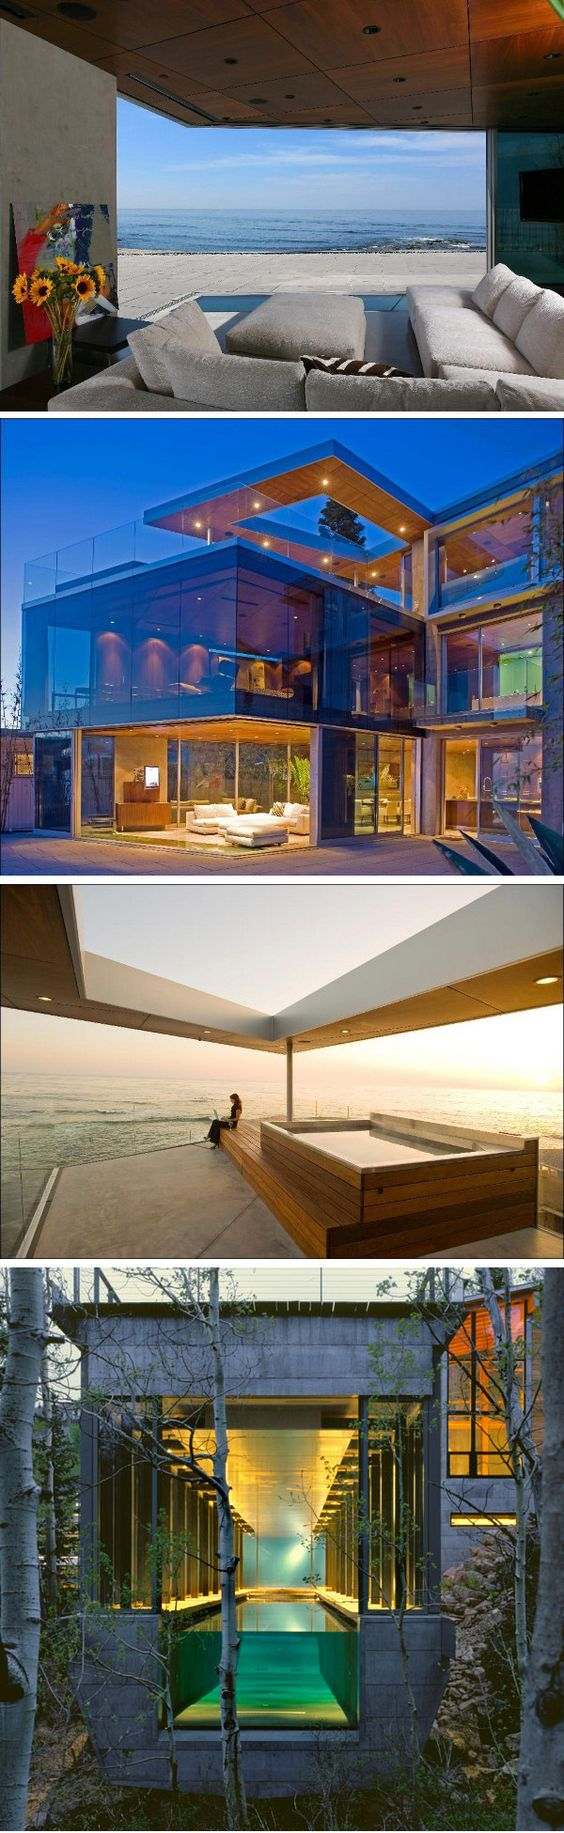 All glass modular beach front home seattle 2011 house for Prefabricated homes seattle